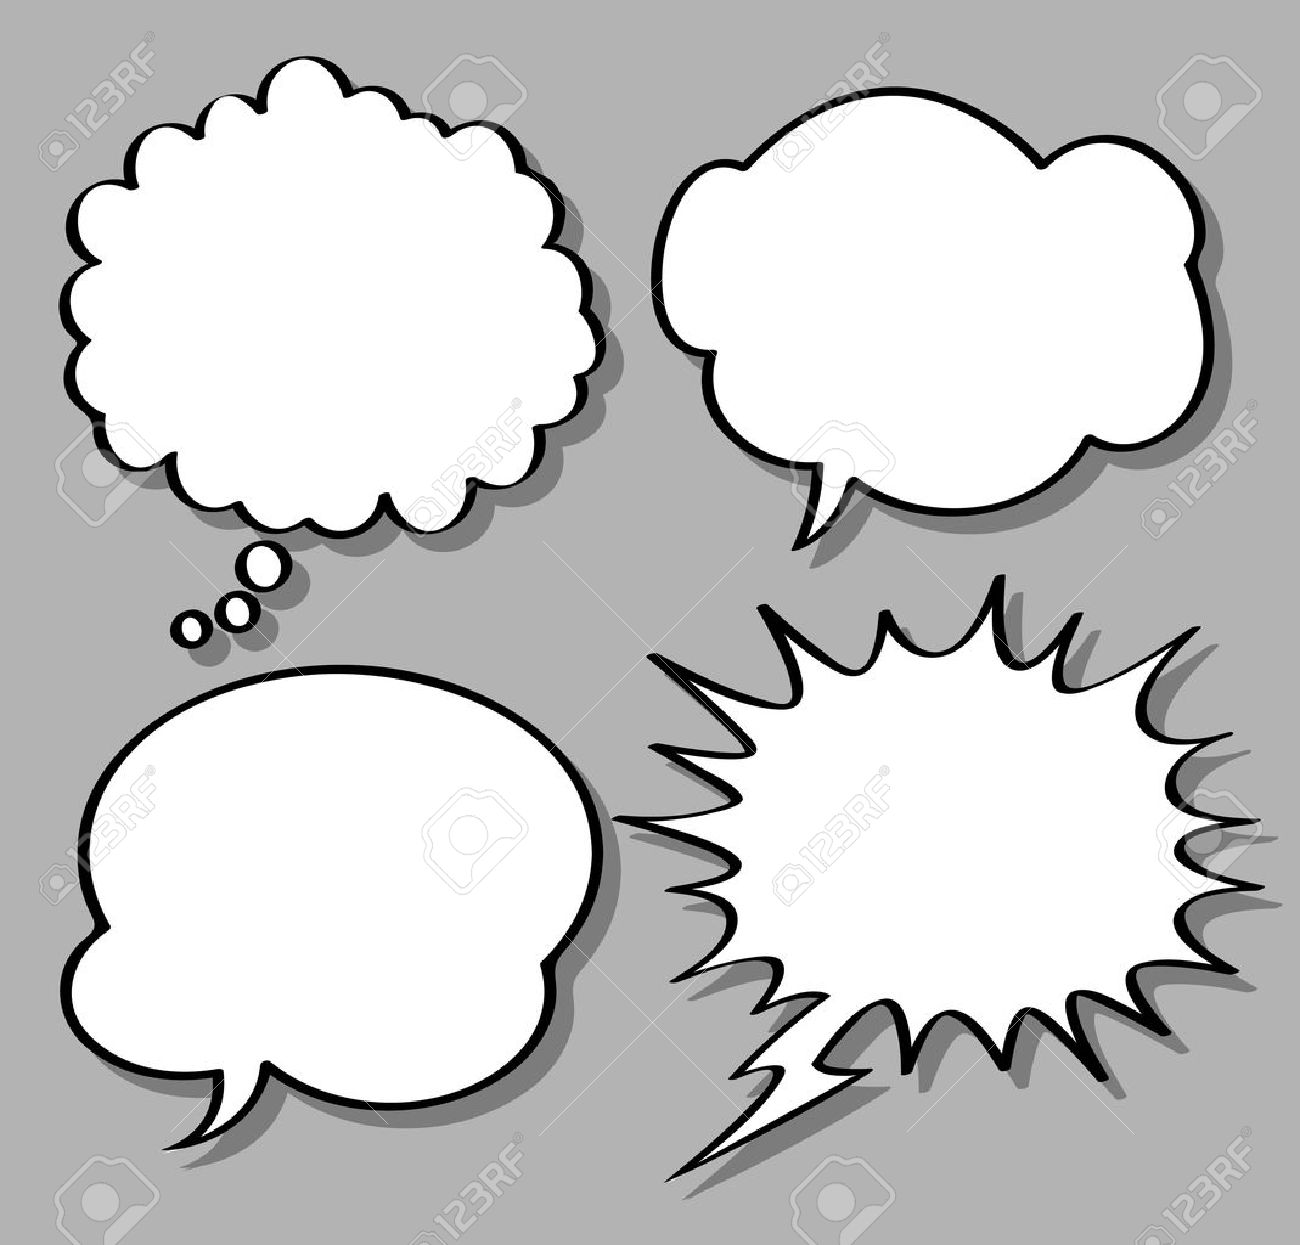 comical bubble speech Stock Vector - 9706736